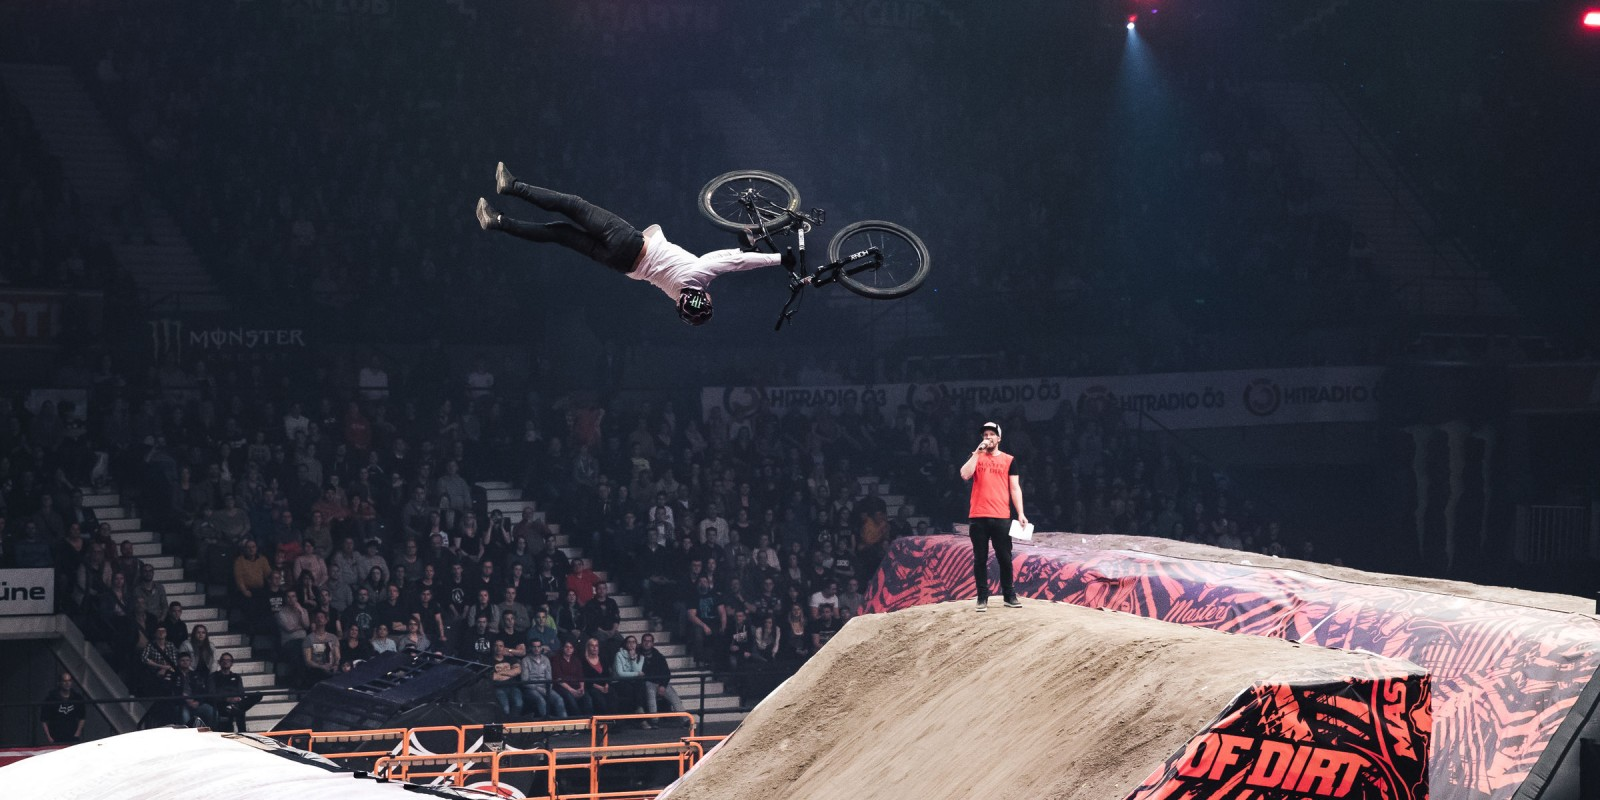 Shots from Masters of Dirt 2018 in Vienna